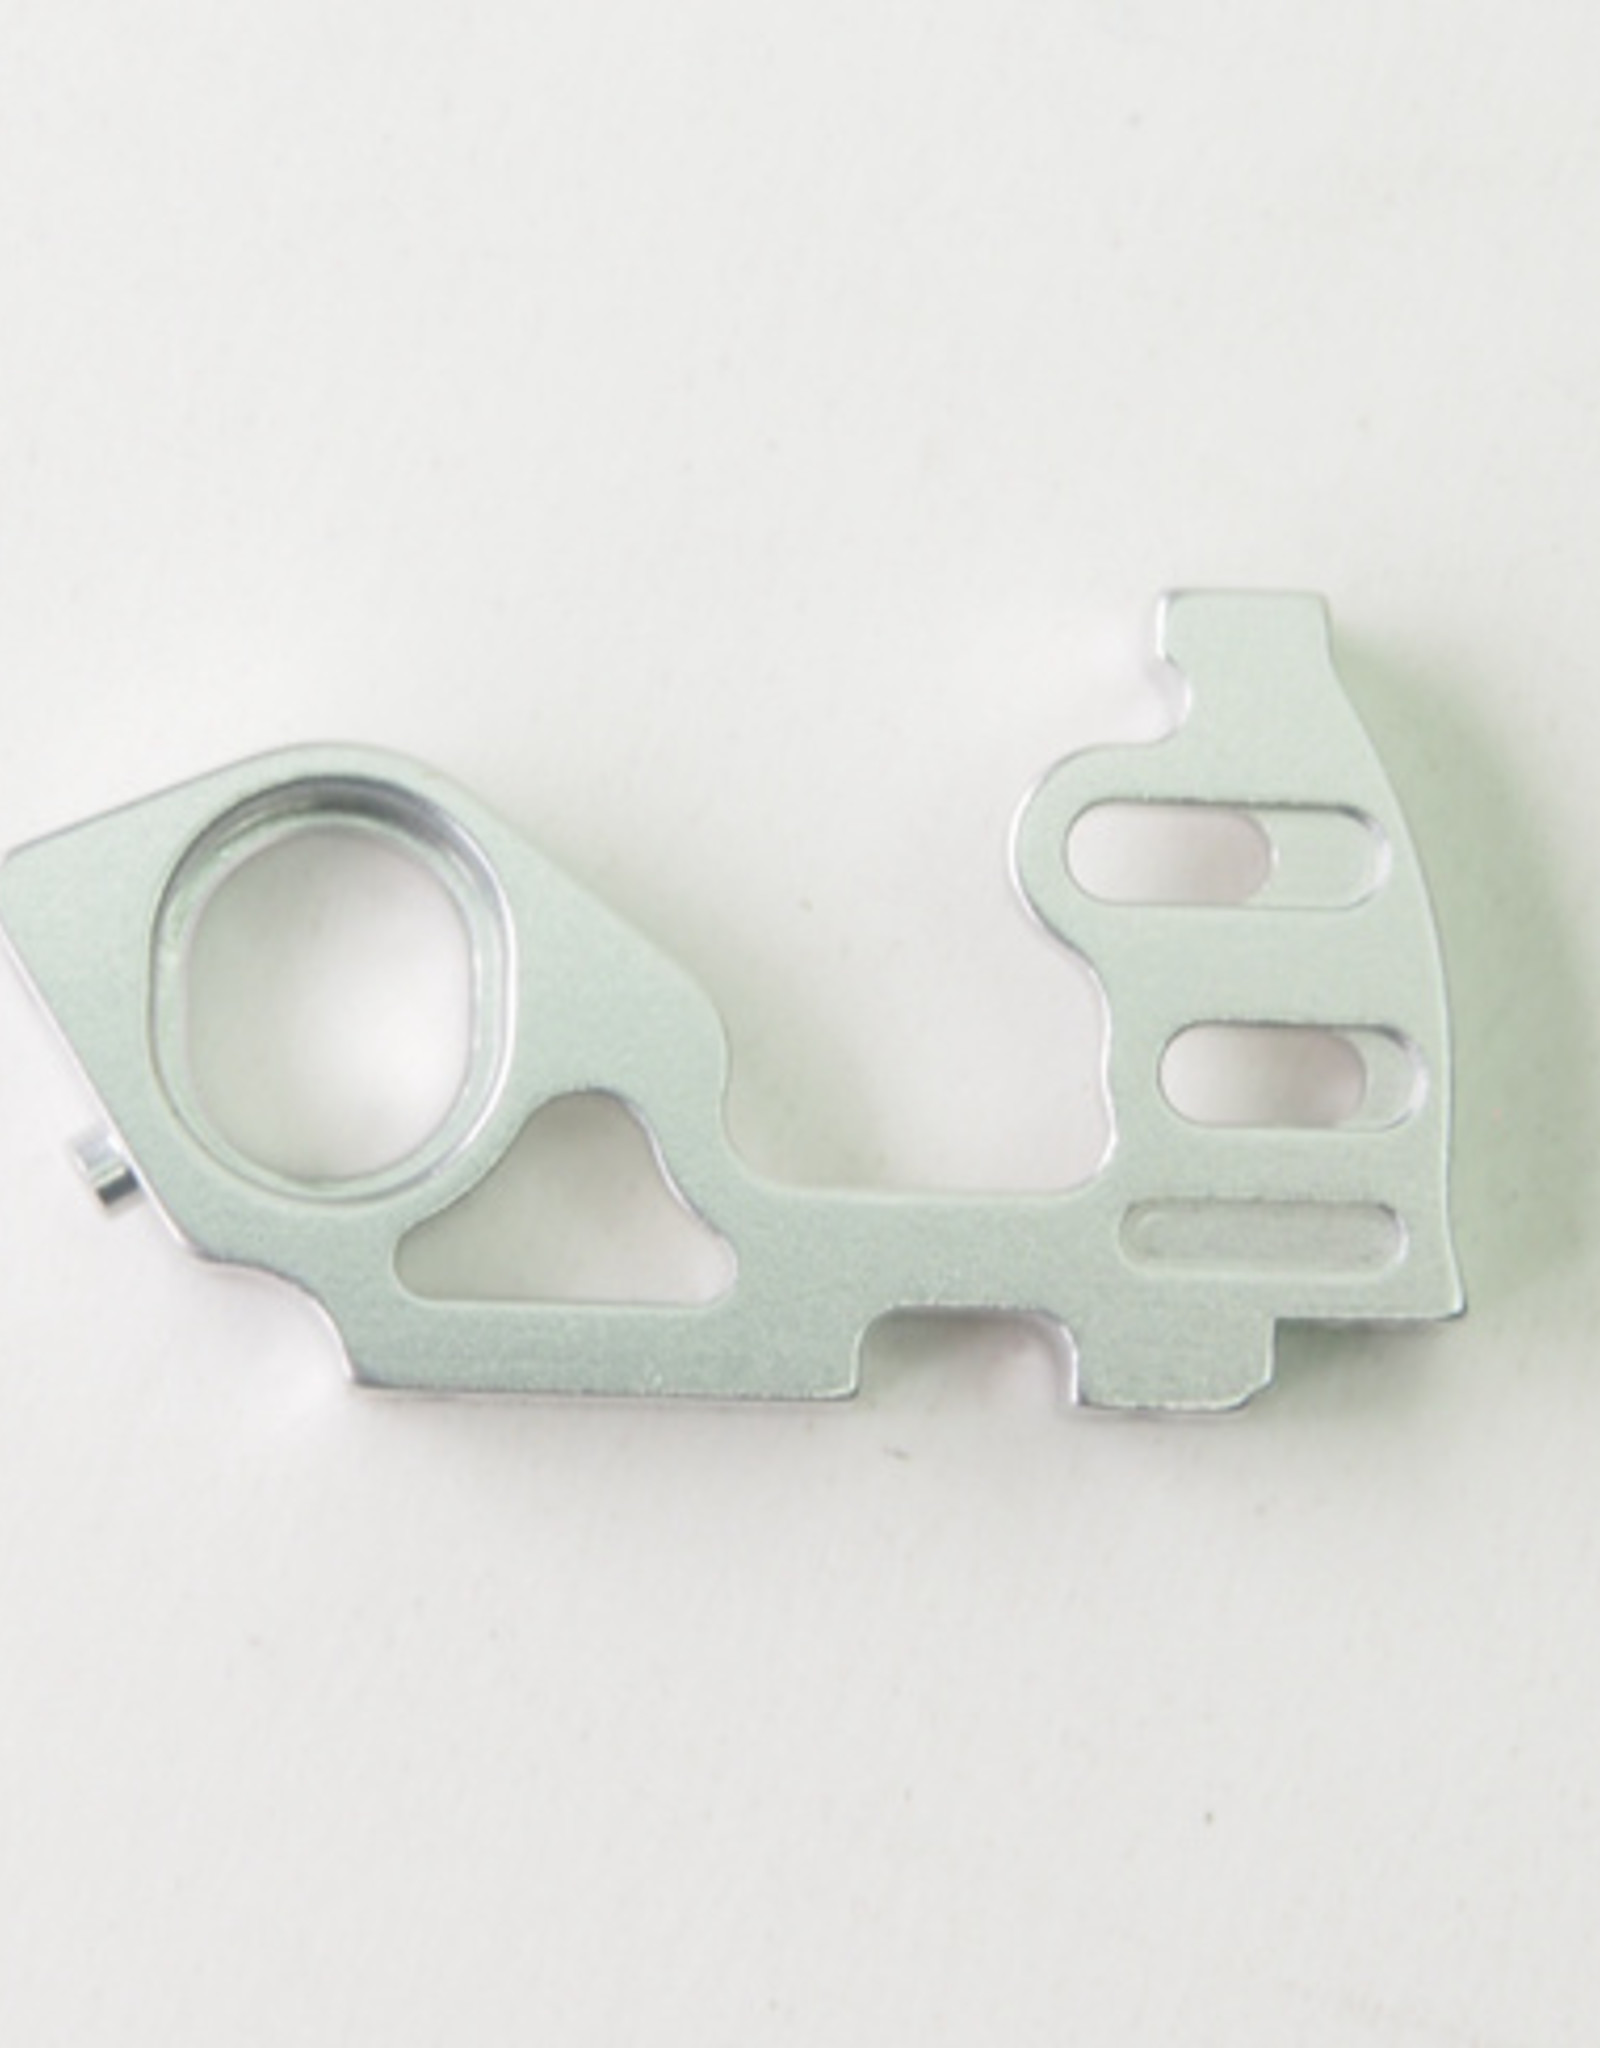 Pn Racing PN Racing Mini-Z V5 LCG Motor Mount Right Side Plate (Silver)